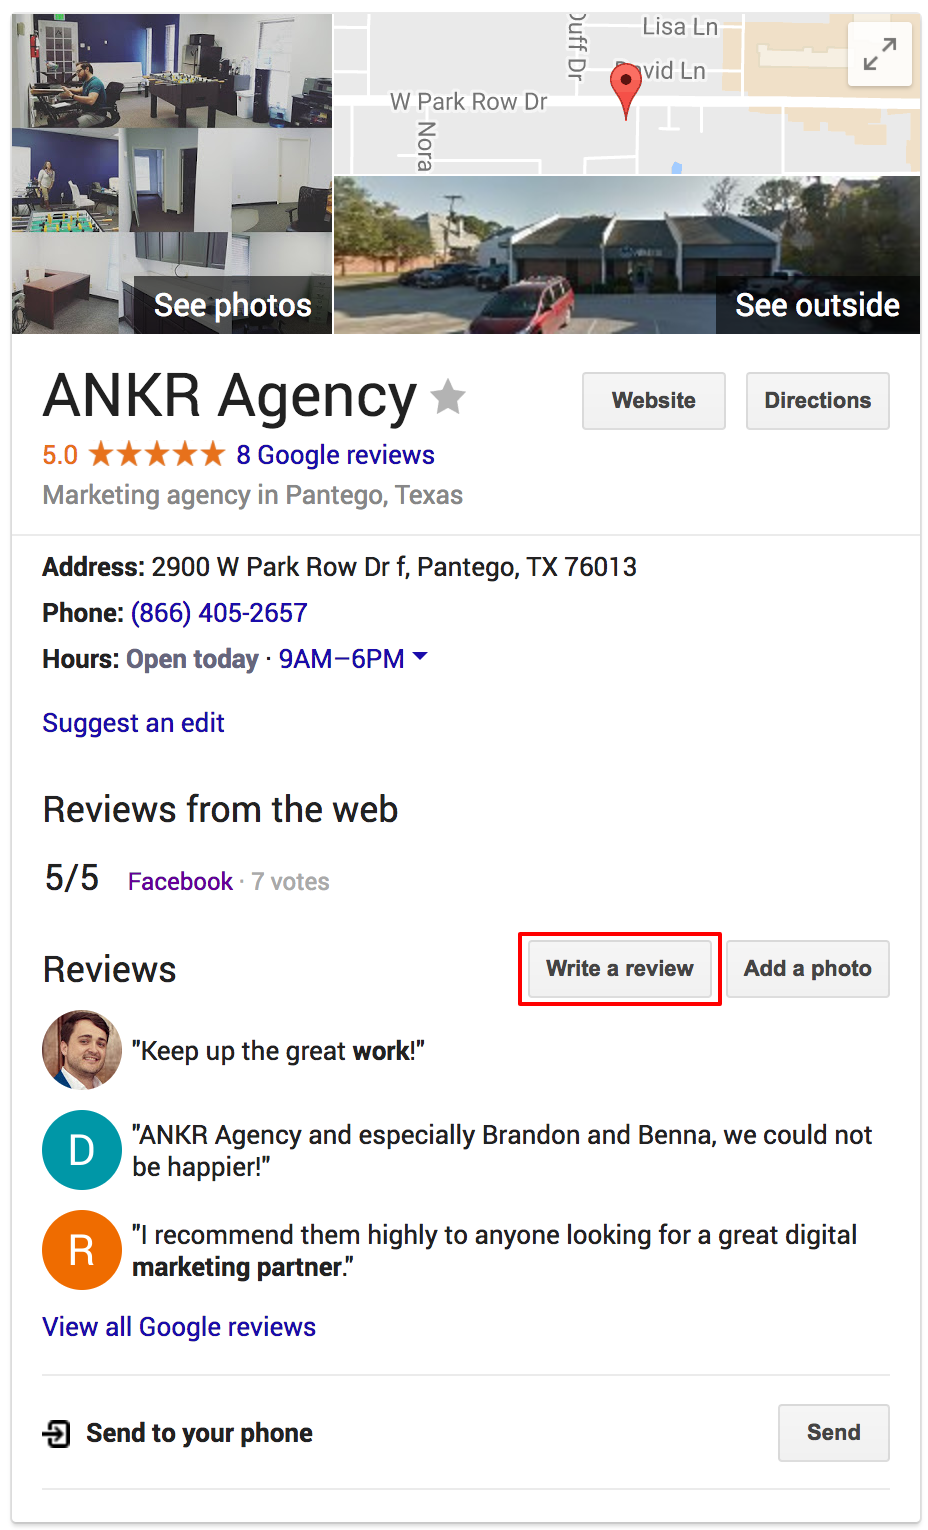 How to Build a Google Client Review Email Campaign - ANKR